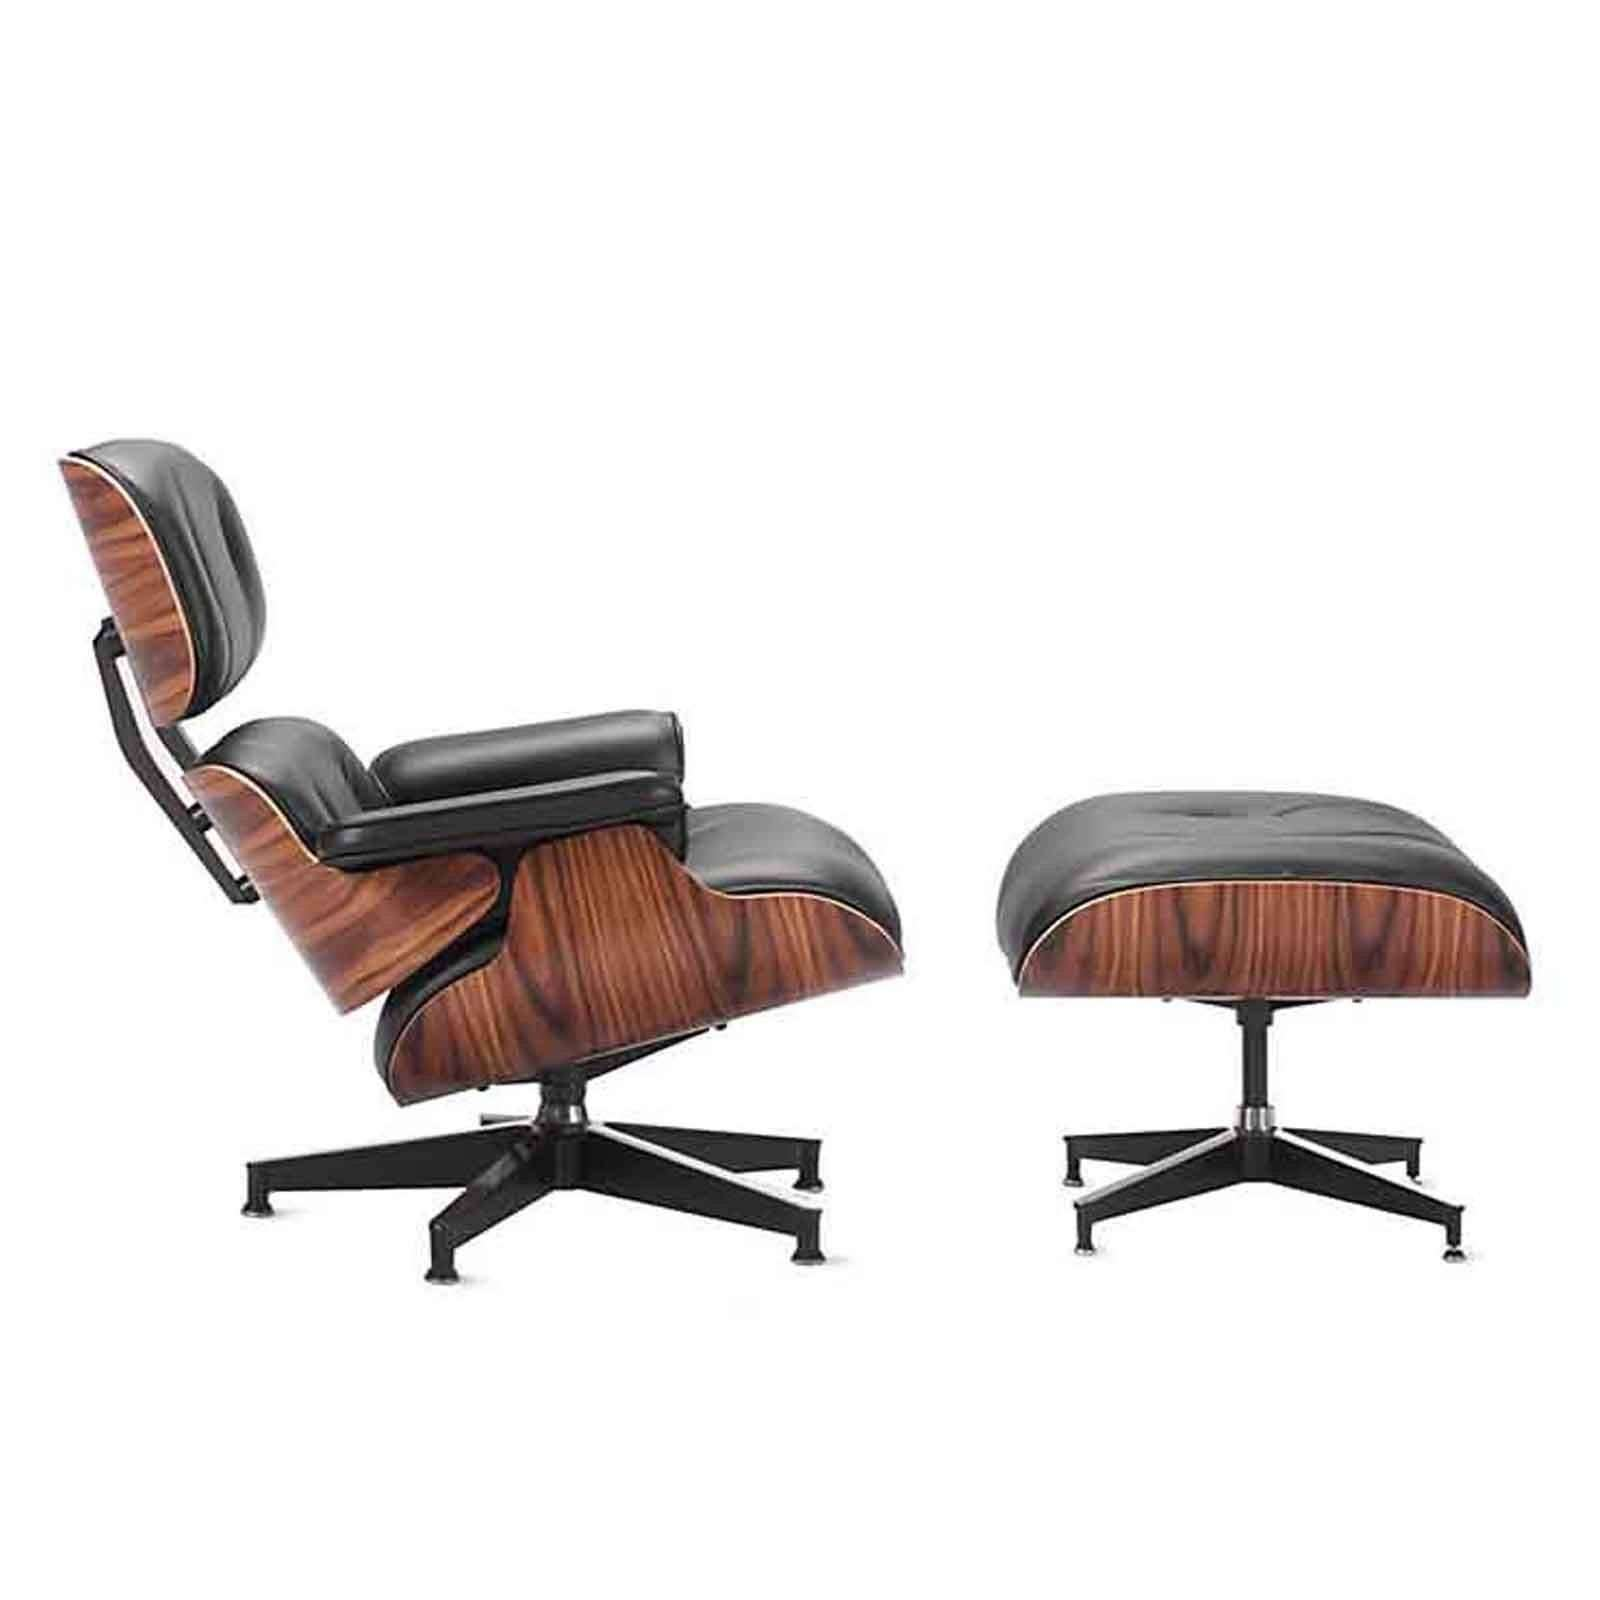 Charmant Eames Lounge Chair Replica